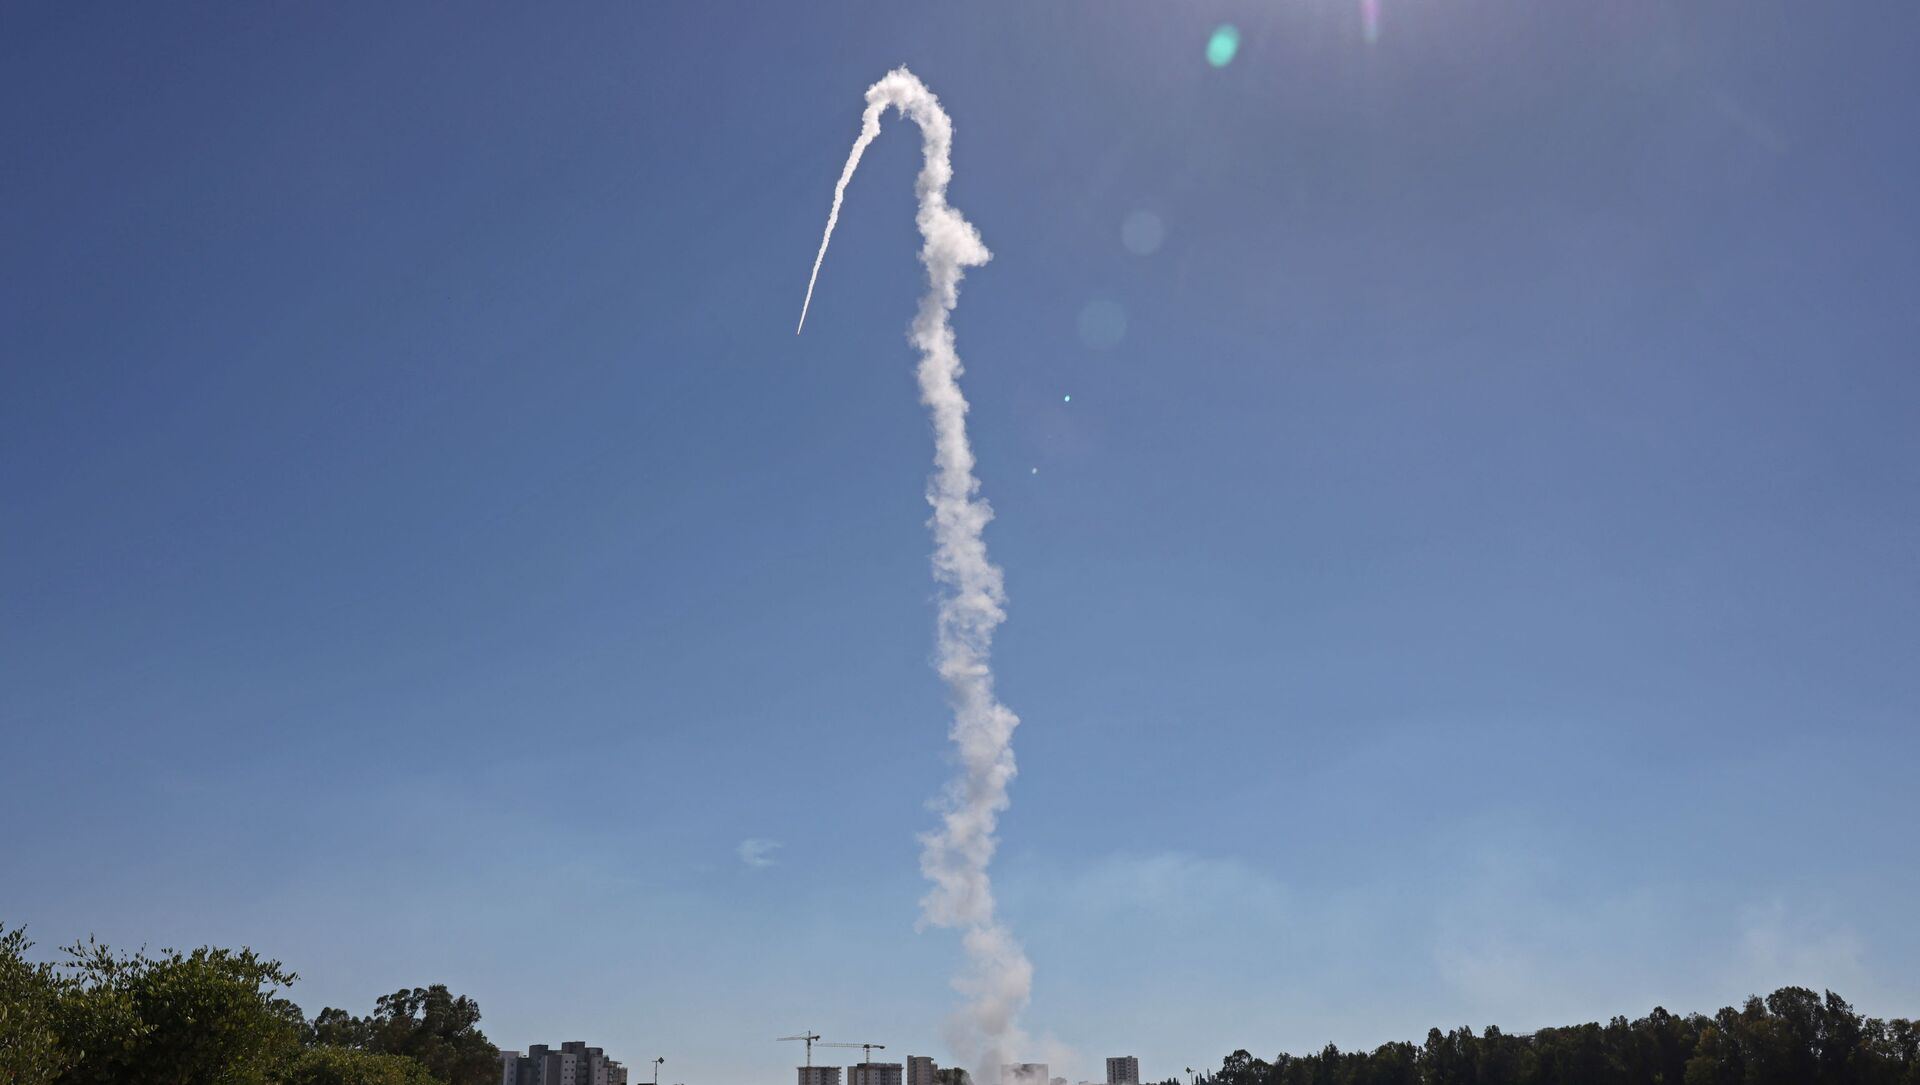 Israel's Iron Dome aerial defence system is launched to intercept rockets launched from the Gaza Strip, above the southern Israeli city of Sderot, on May 18, 2021. - Sputnik International, 1920, 06.08.2021